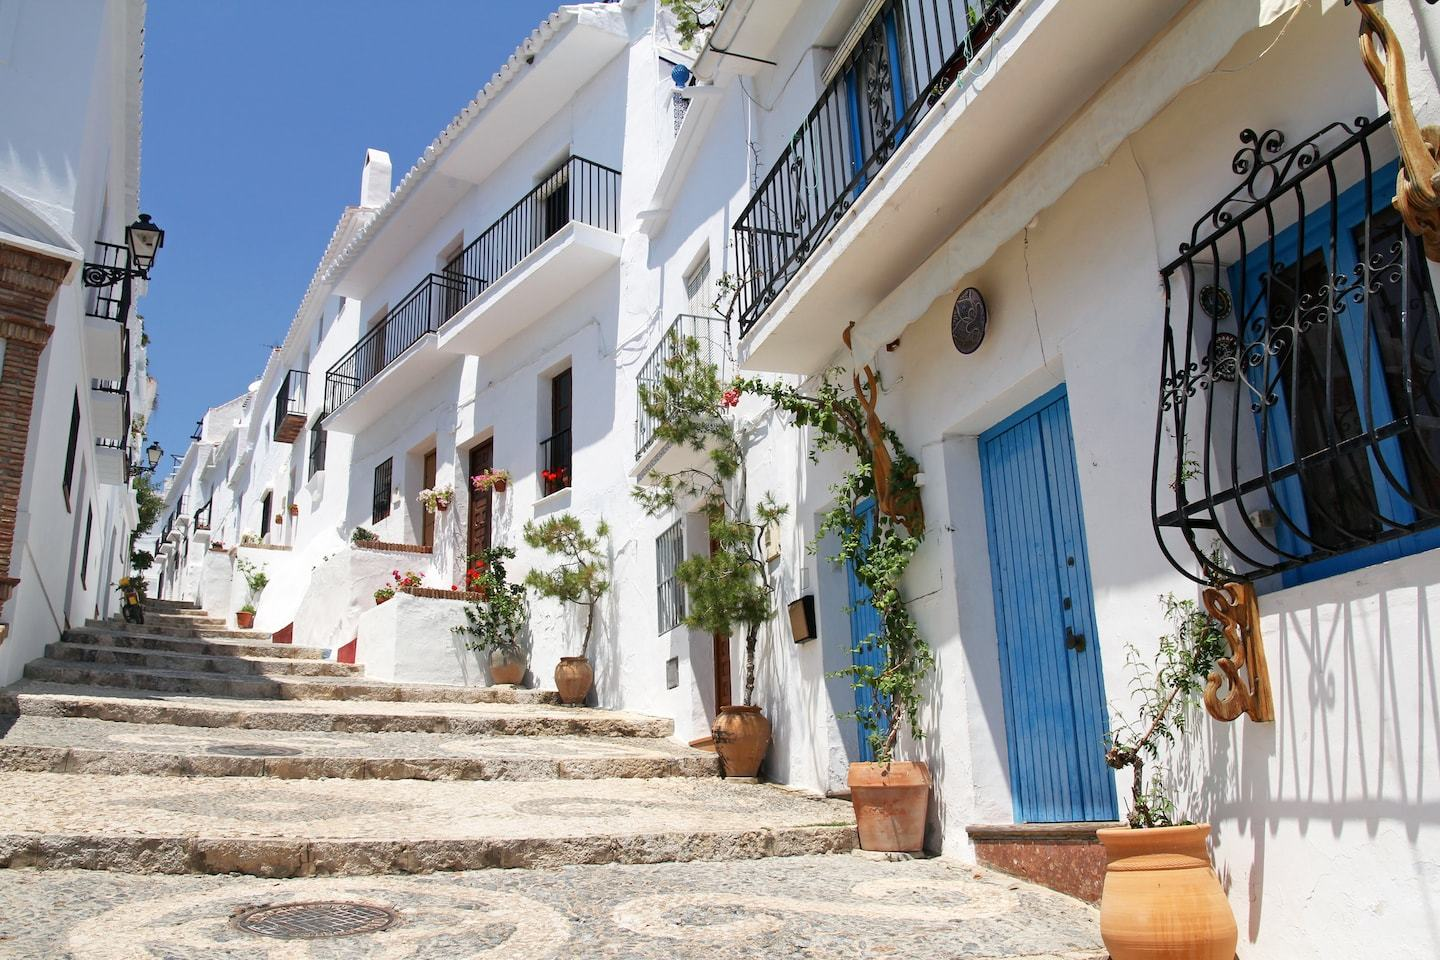 white washed buildings with blue doors and plants in spain